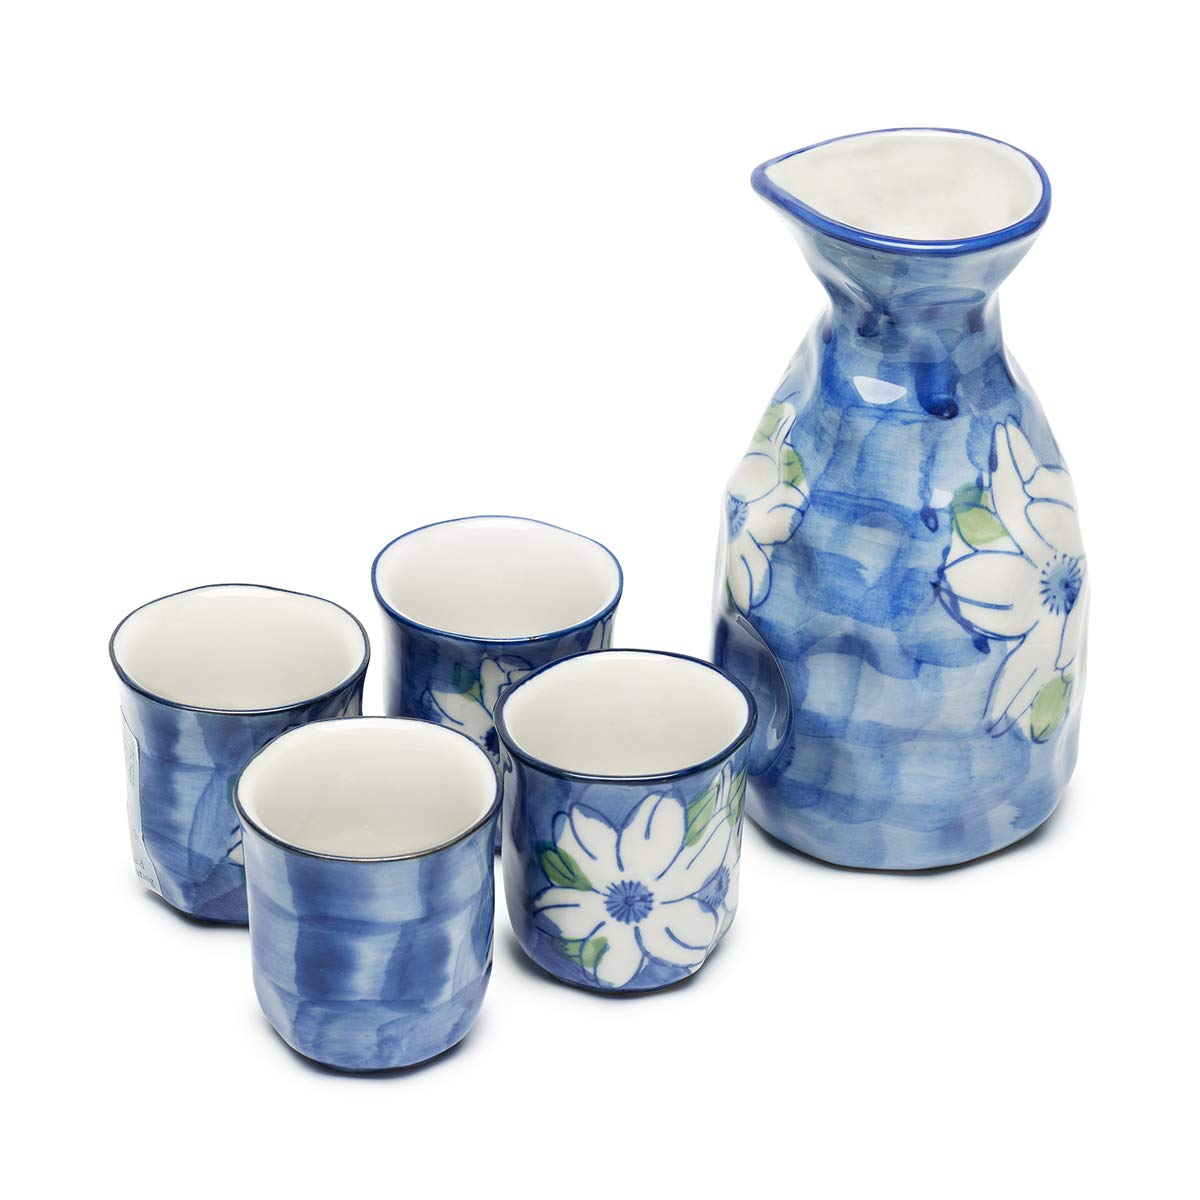 KBNI Ceramic Sake Set Hand Painting Jasmine Flower Traditional Blue and White Porcelain include 1PC Sake Bottle 7.6oz and 4PC Sake Cups 1.7oz